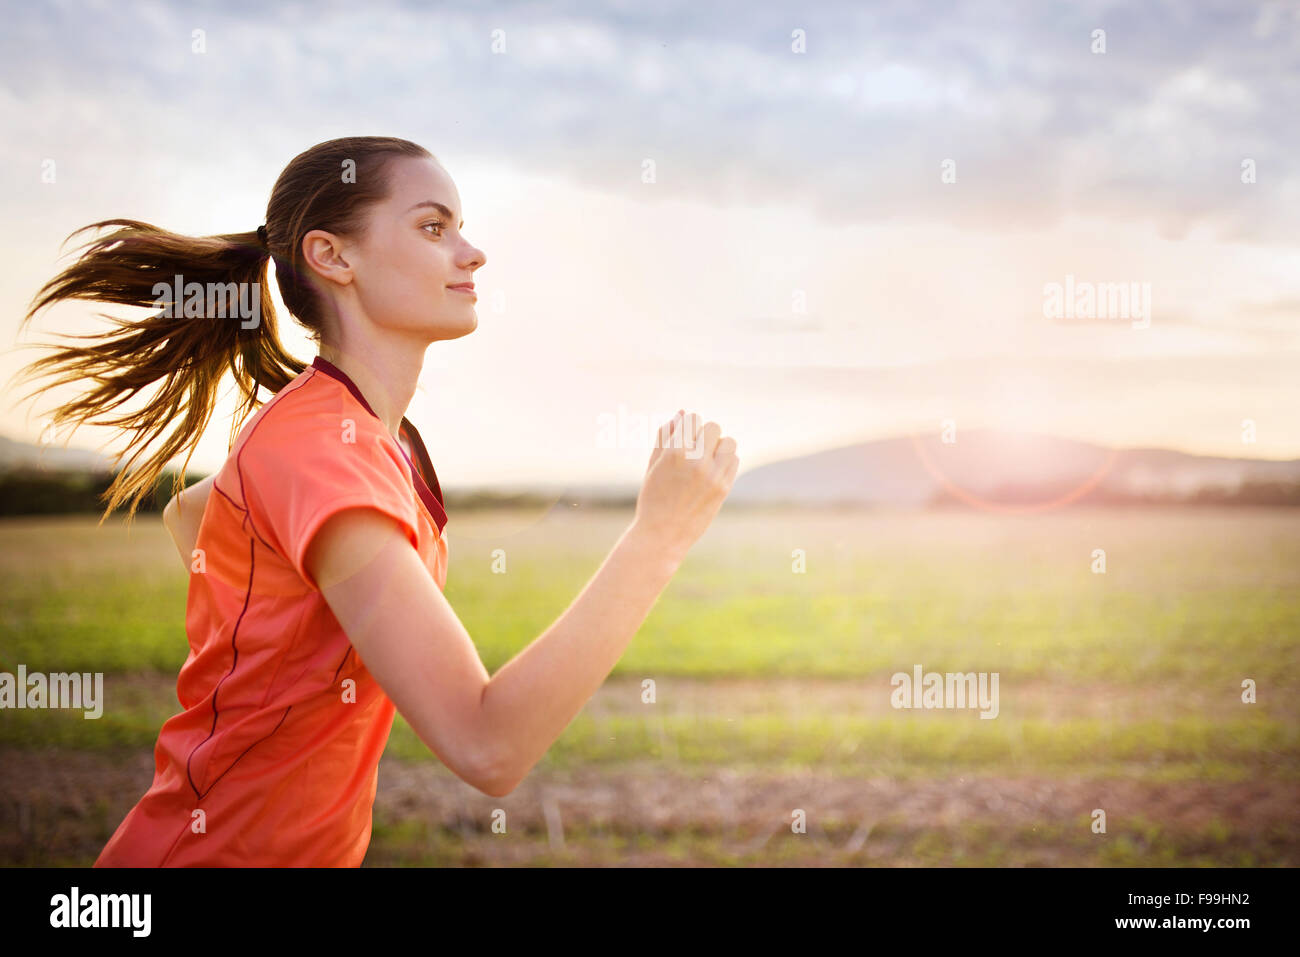 Cross-country trail running woman at sunset. Runnerwoman exercising outside as part of healthy lifestyle. - Stock Image